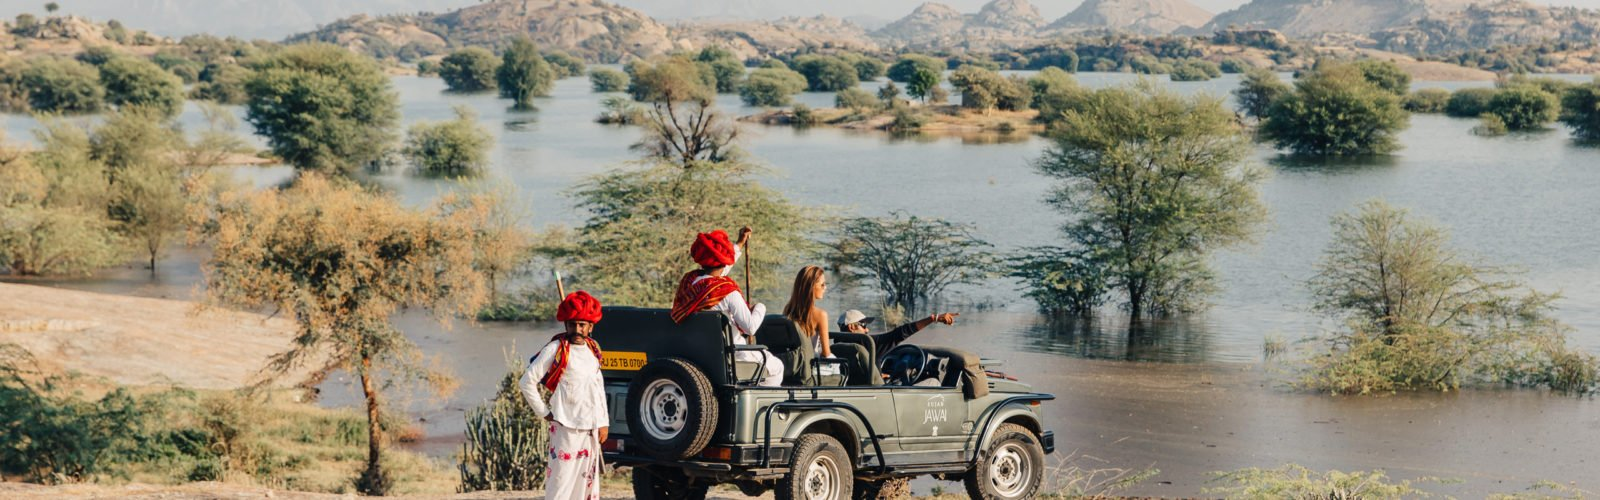 game-drive-jawai-rural-rajasthan-india